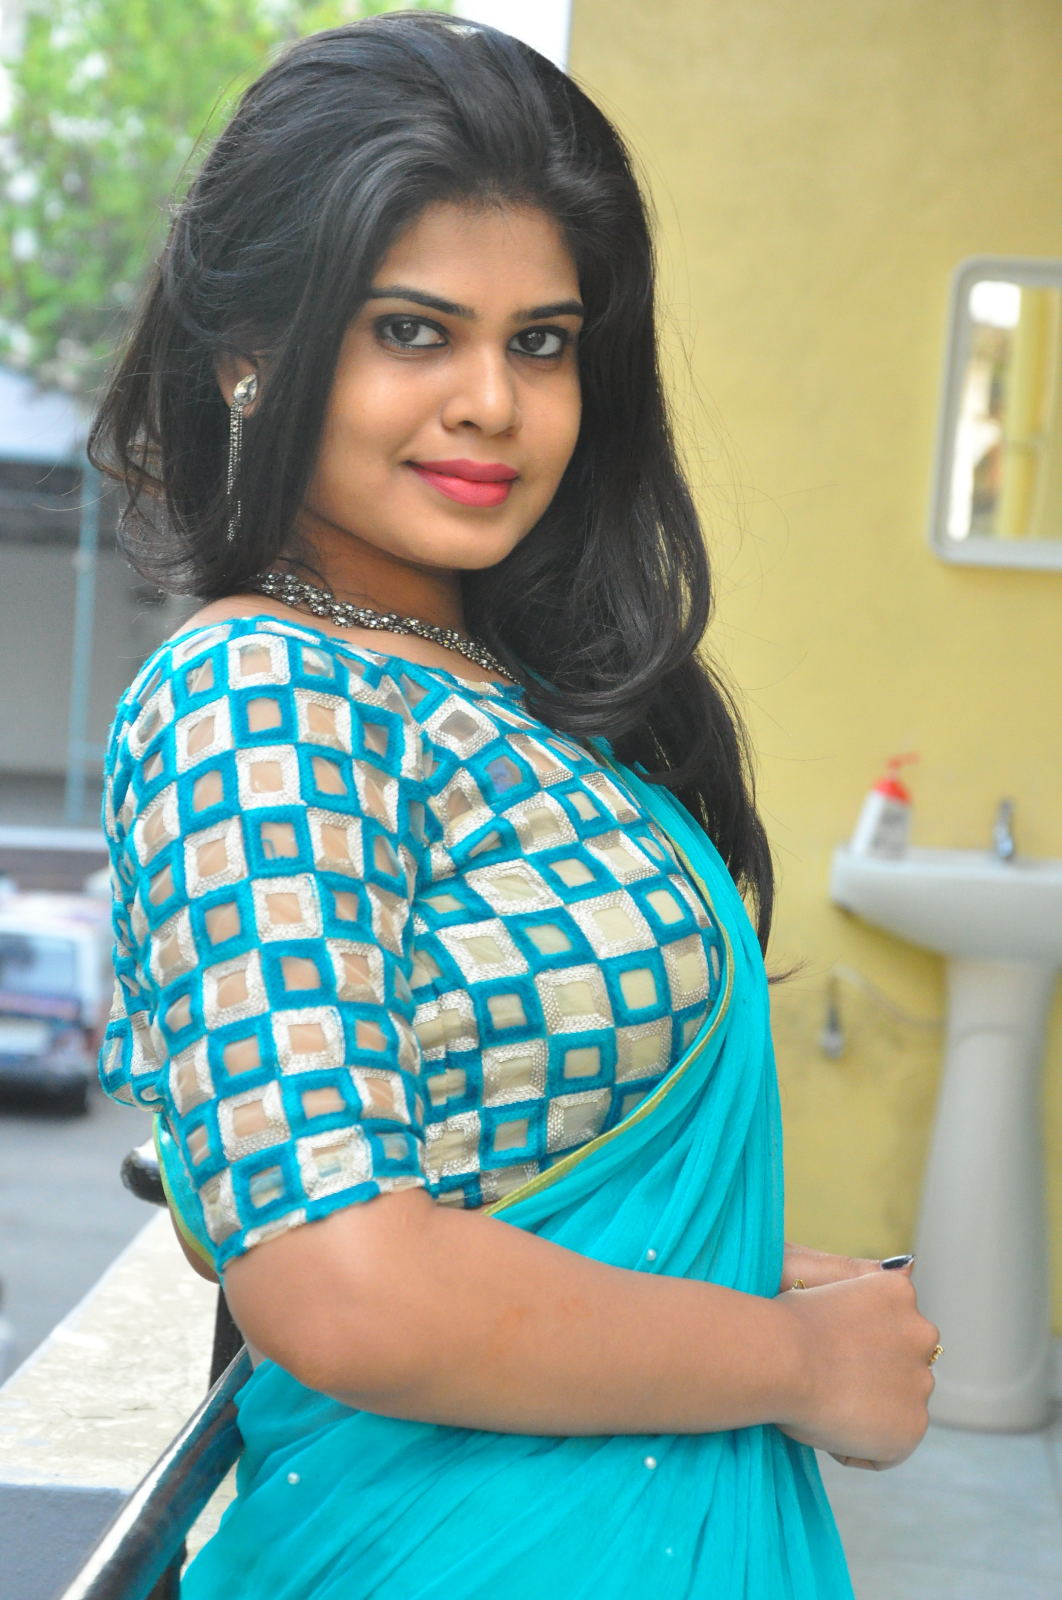 alekhya Brand New Sexy Photo Stills of Alekhya | Tollywood | Actresses Alekhya HOT pics 86